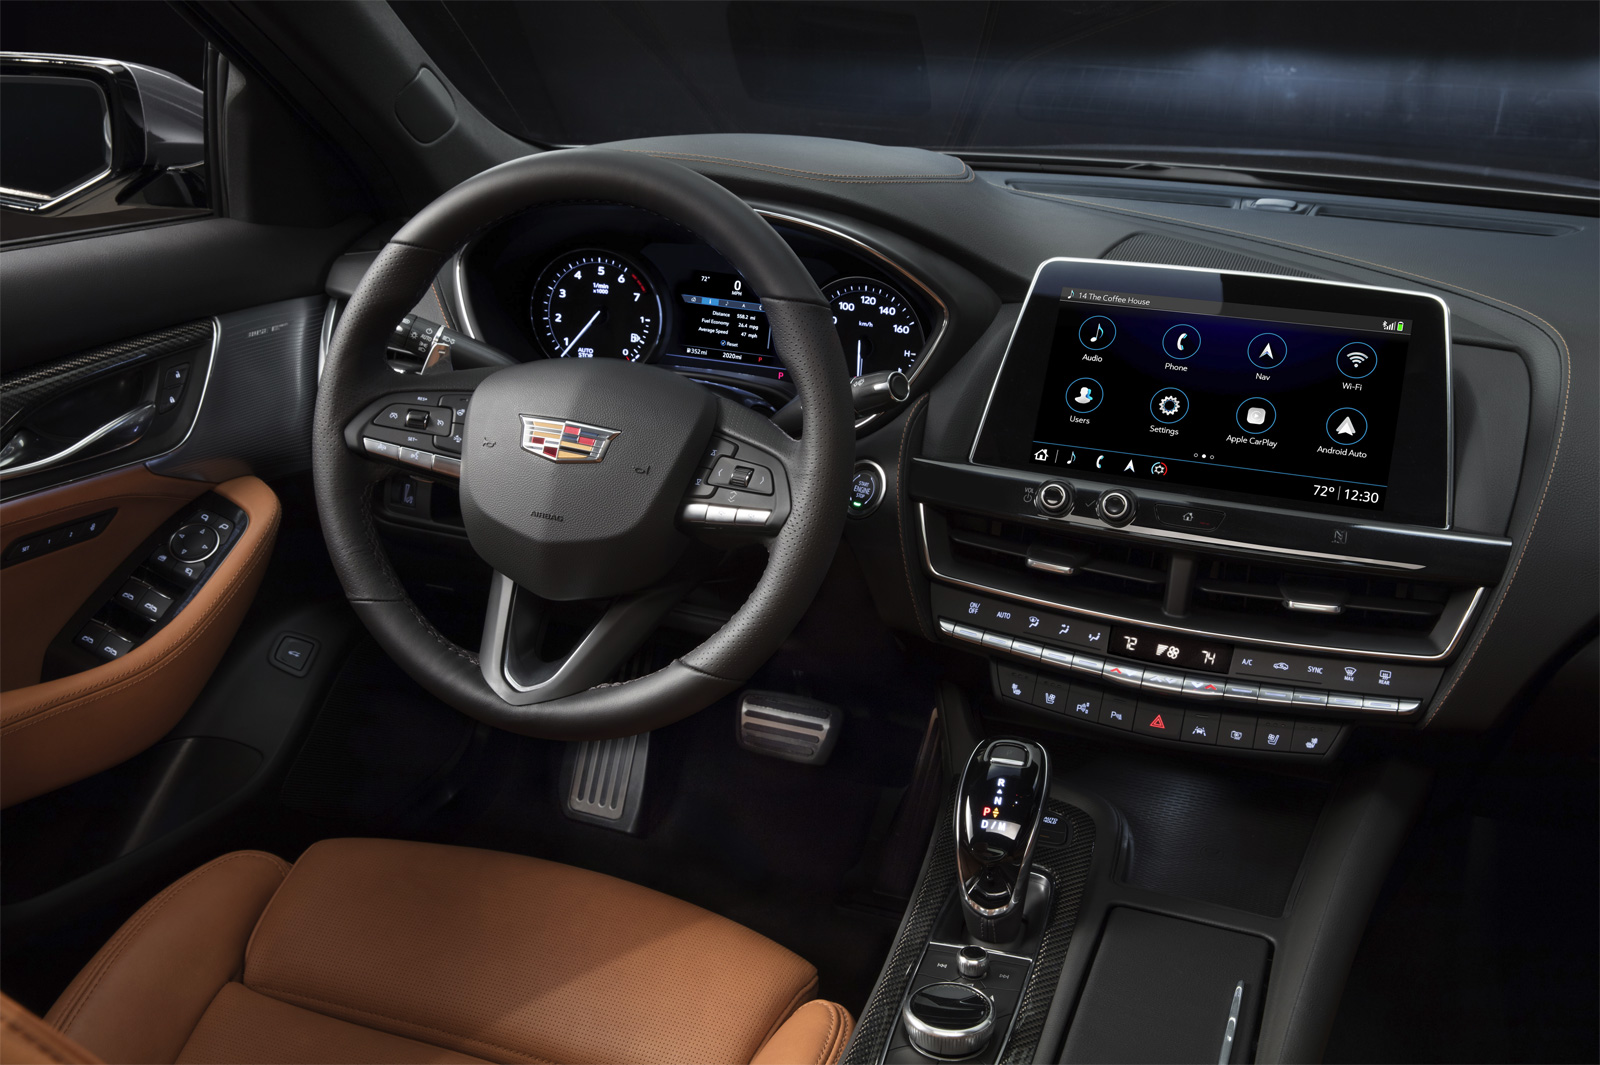 Starting next year, all Cadillac CT5 sedans will benefit from digital instrument clusters in the Premium Luxury and Sport trims. The Luxury trim will retain its analog dash design with a tiny screen squeezed in between the gauges.